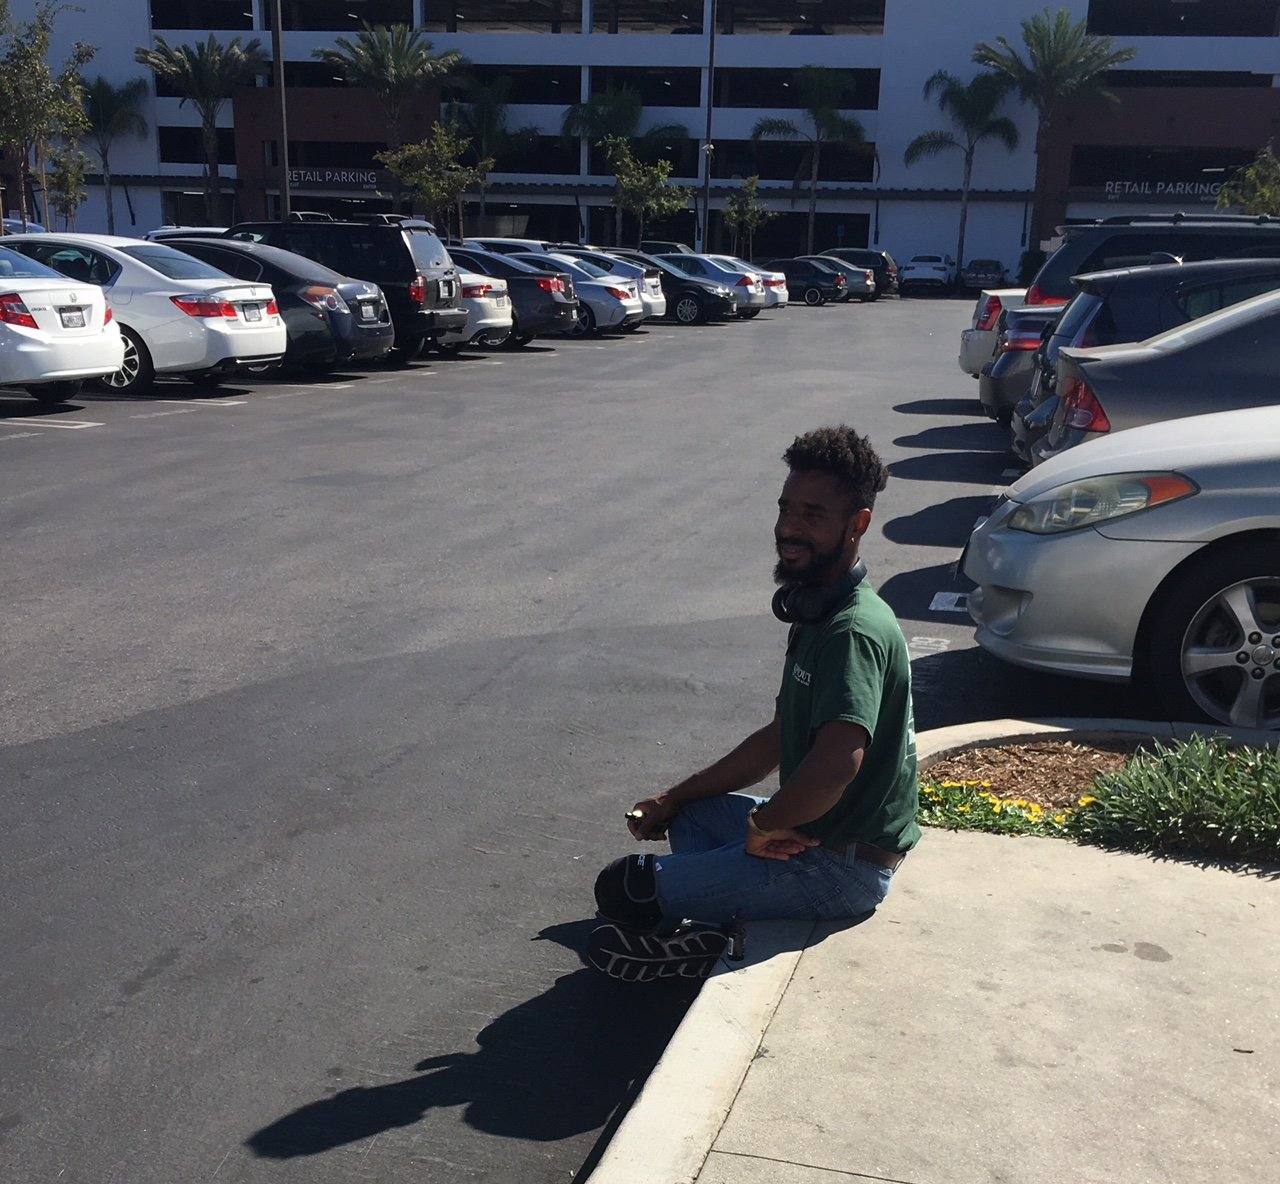 Meditating in the Parking Lot!